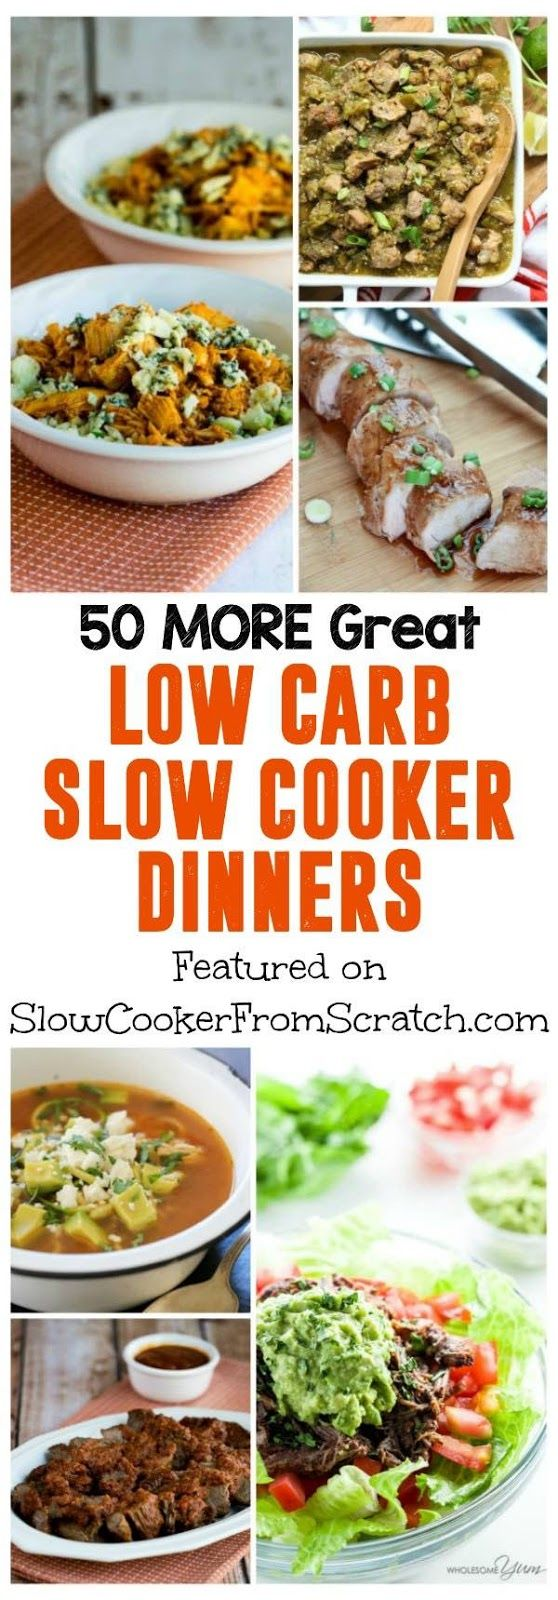 50 more great low carb slow cooker dinners featured on for Healthy recipes for dinner low carb